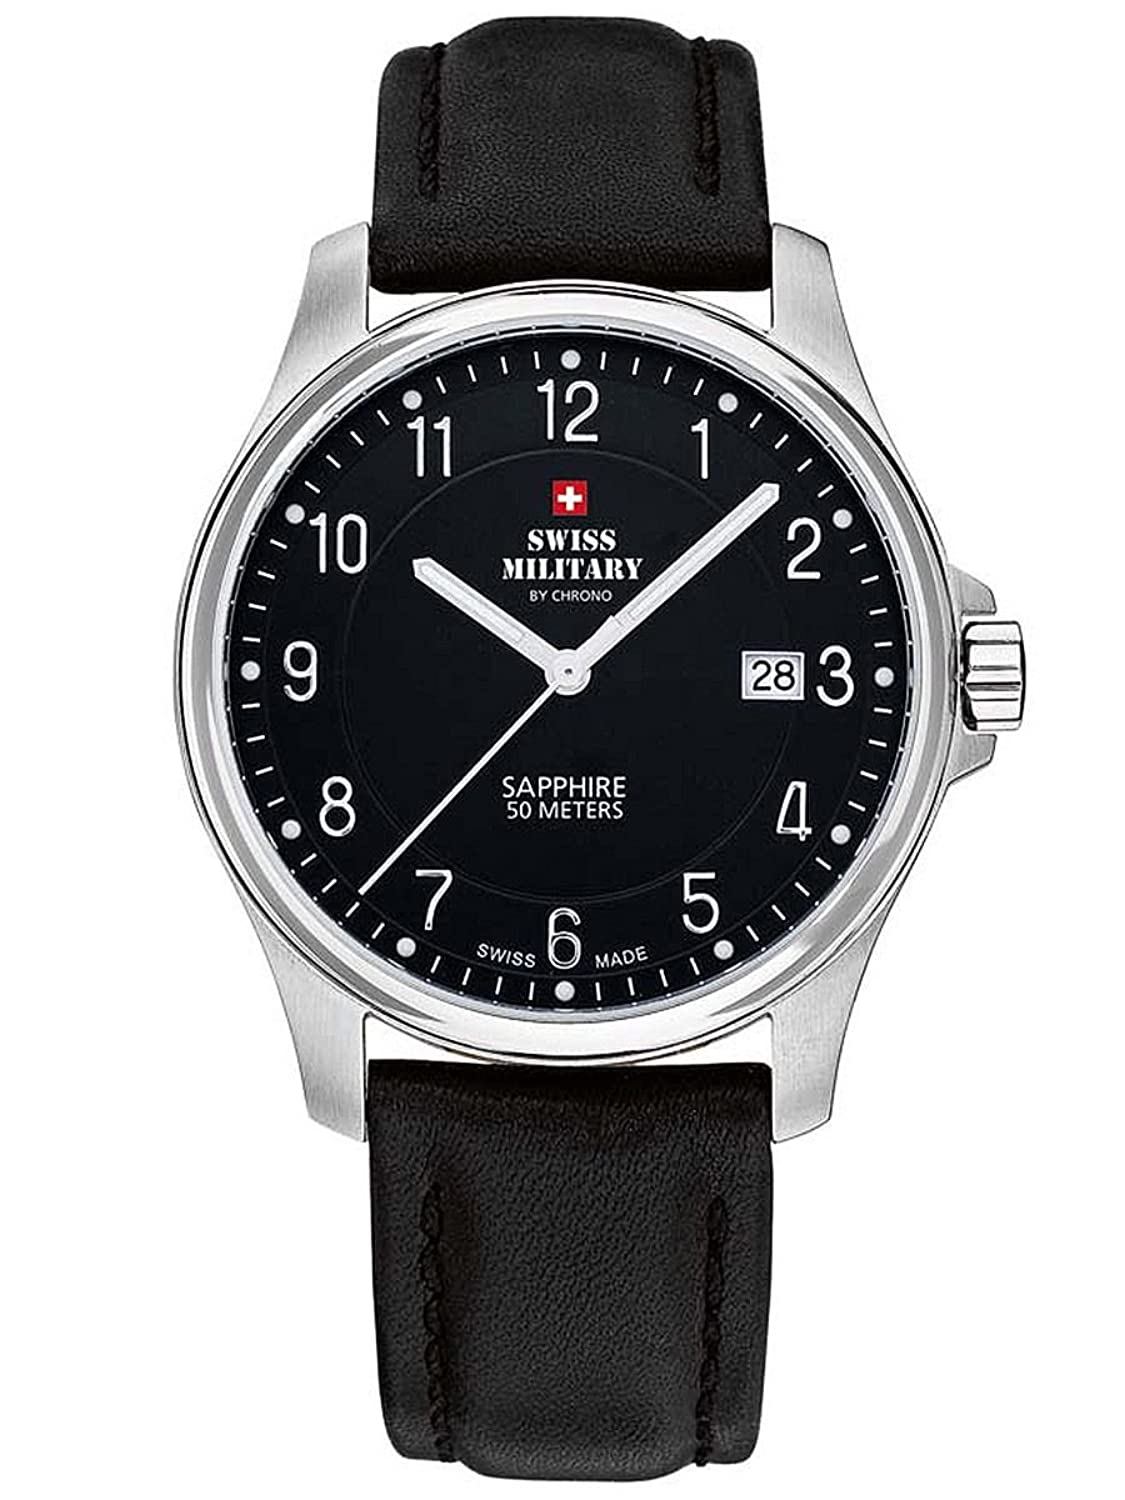 SWISS MILITARY BY CHRONO HERRENUHR